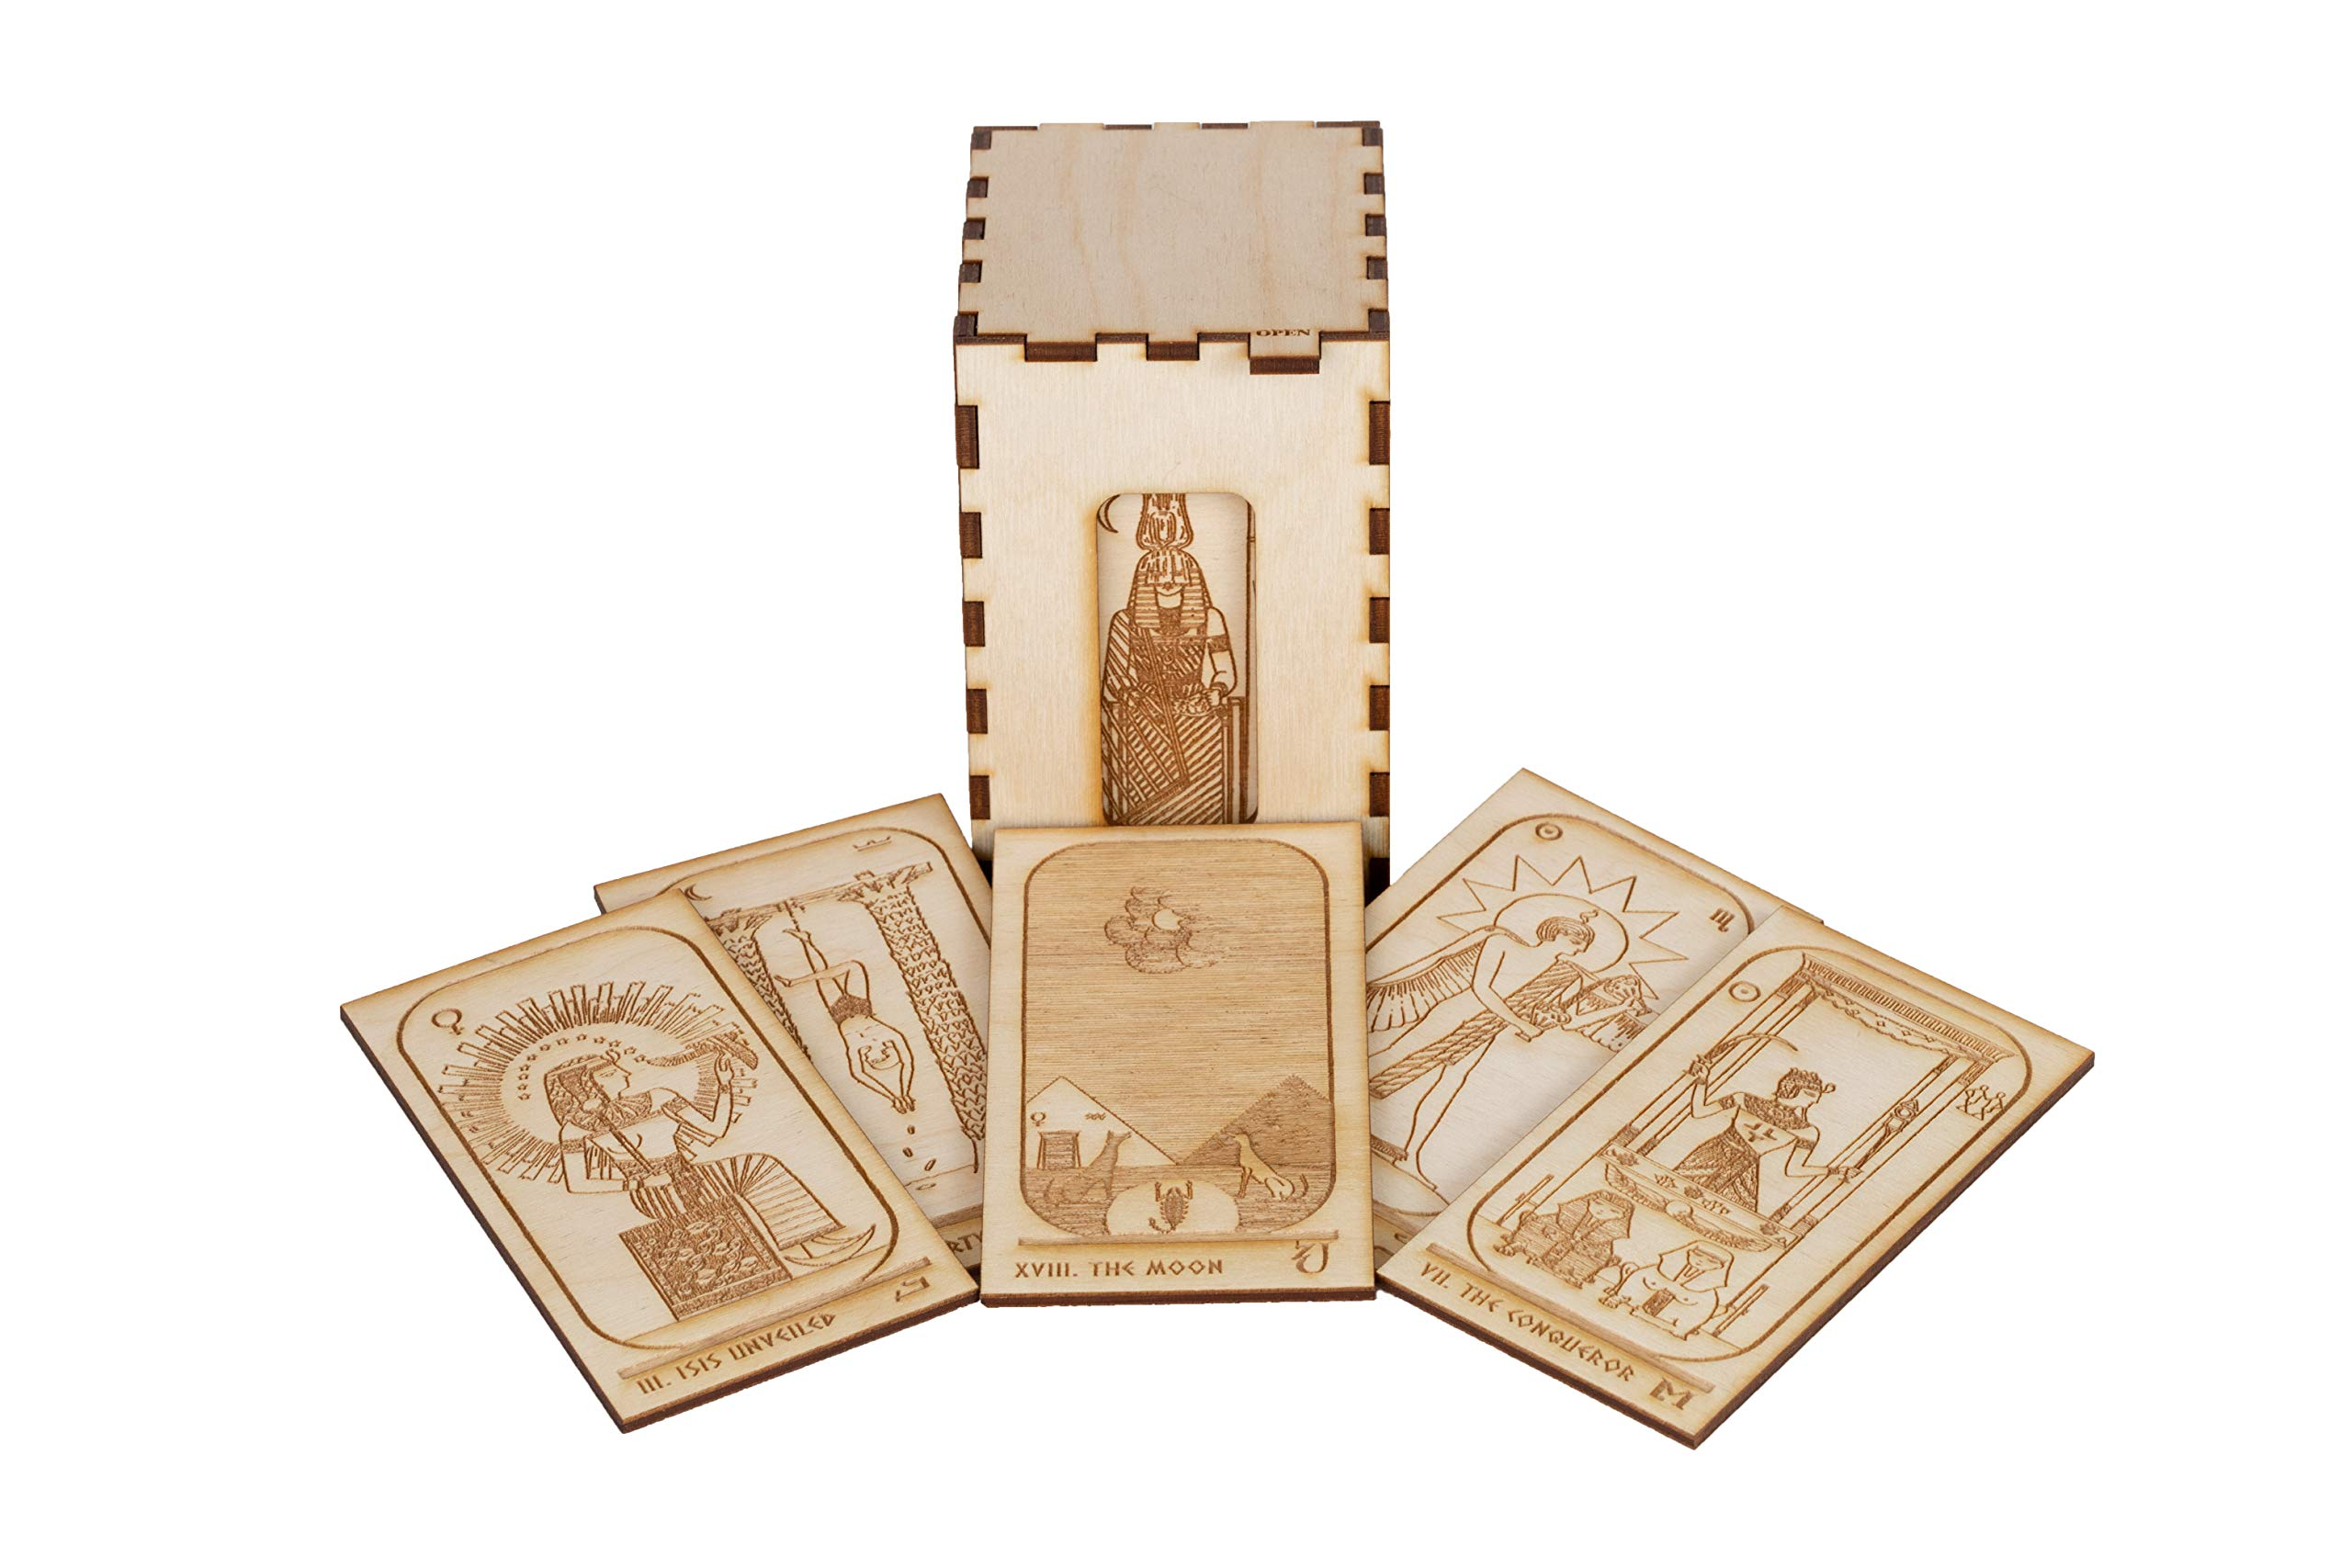 LumEngrave Wood Engraved Egyptian Tarot Deck Historically Accurate Early 20th Century Tarot Deck | 22 Card Major Arcana Egypt Gift Occult Gift Mystic by LumEngrave (Image #7)